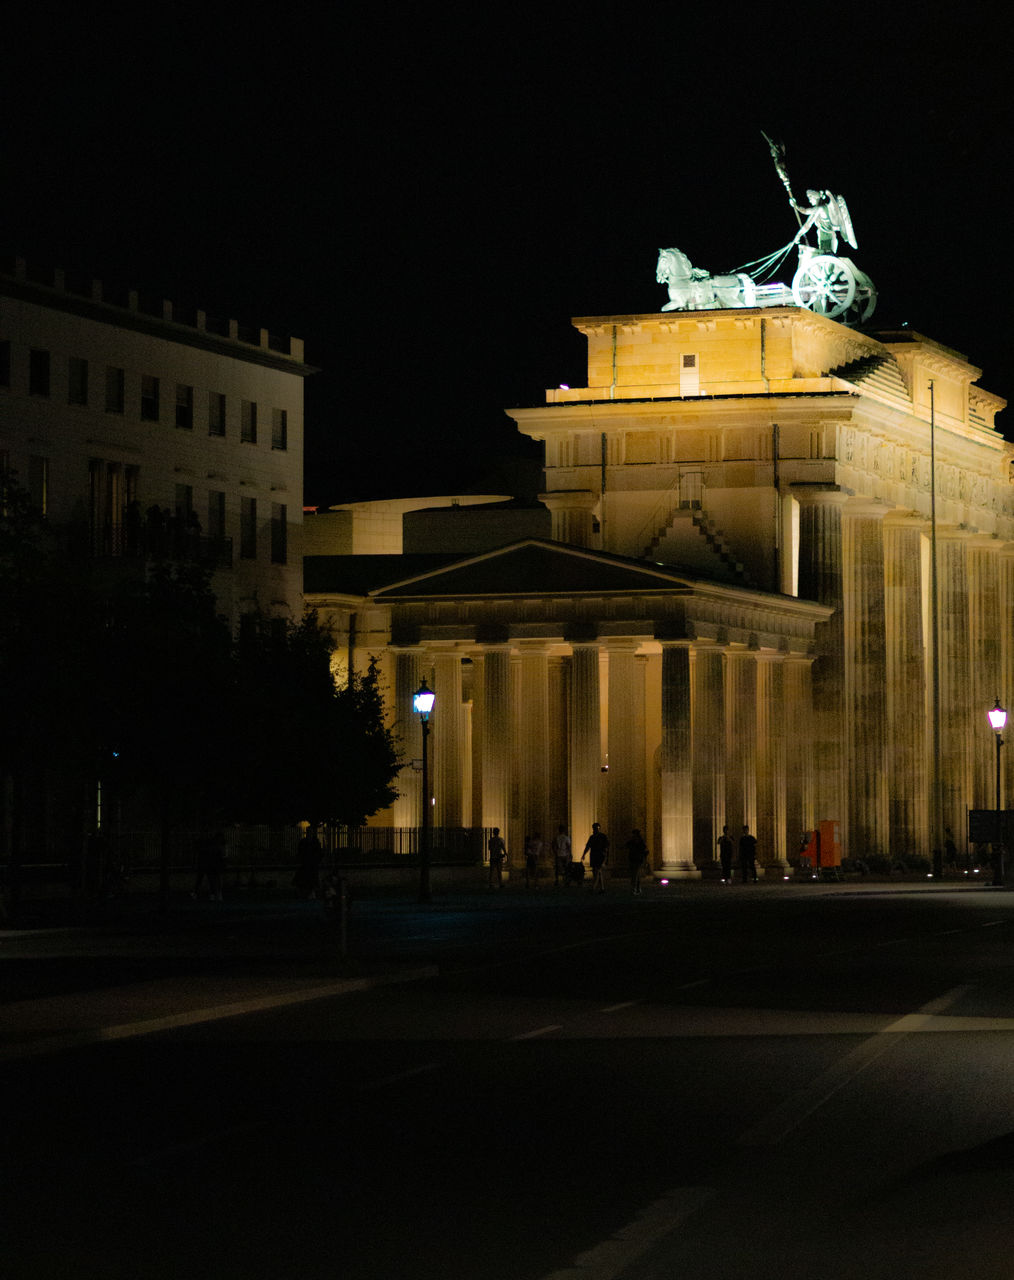 night, architecture, building exterior, built structure, illuminated, city, history, street, the past, nature, building, travel destinations, sky, sculpture, travel, statue, incidental people, city life, tourism, architectural column, city gate